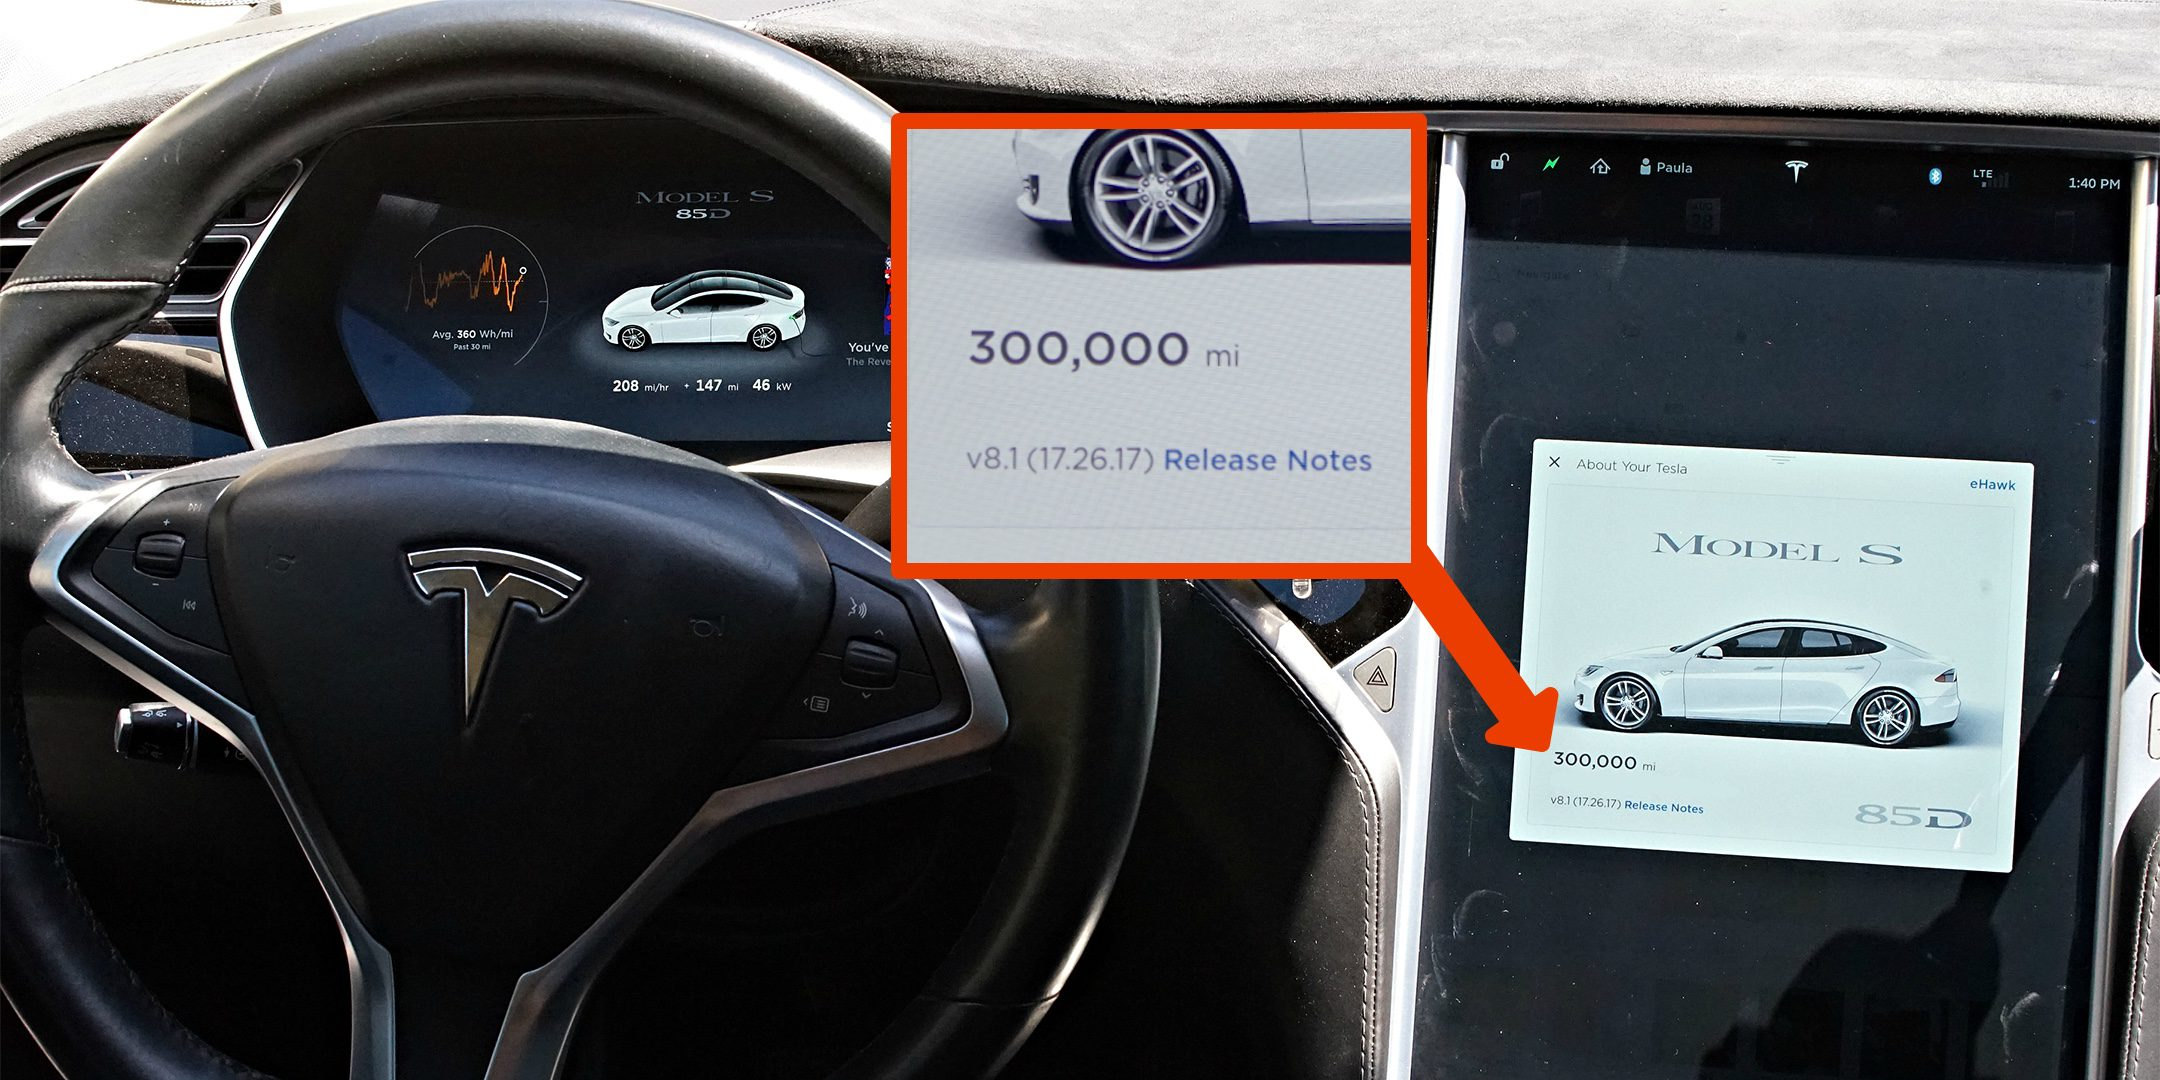 A Tesla Model S hits 300,000 miles in just 2 years – saving an estimated $60,000 on fuel and maintenance